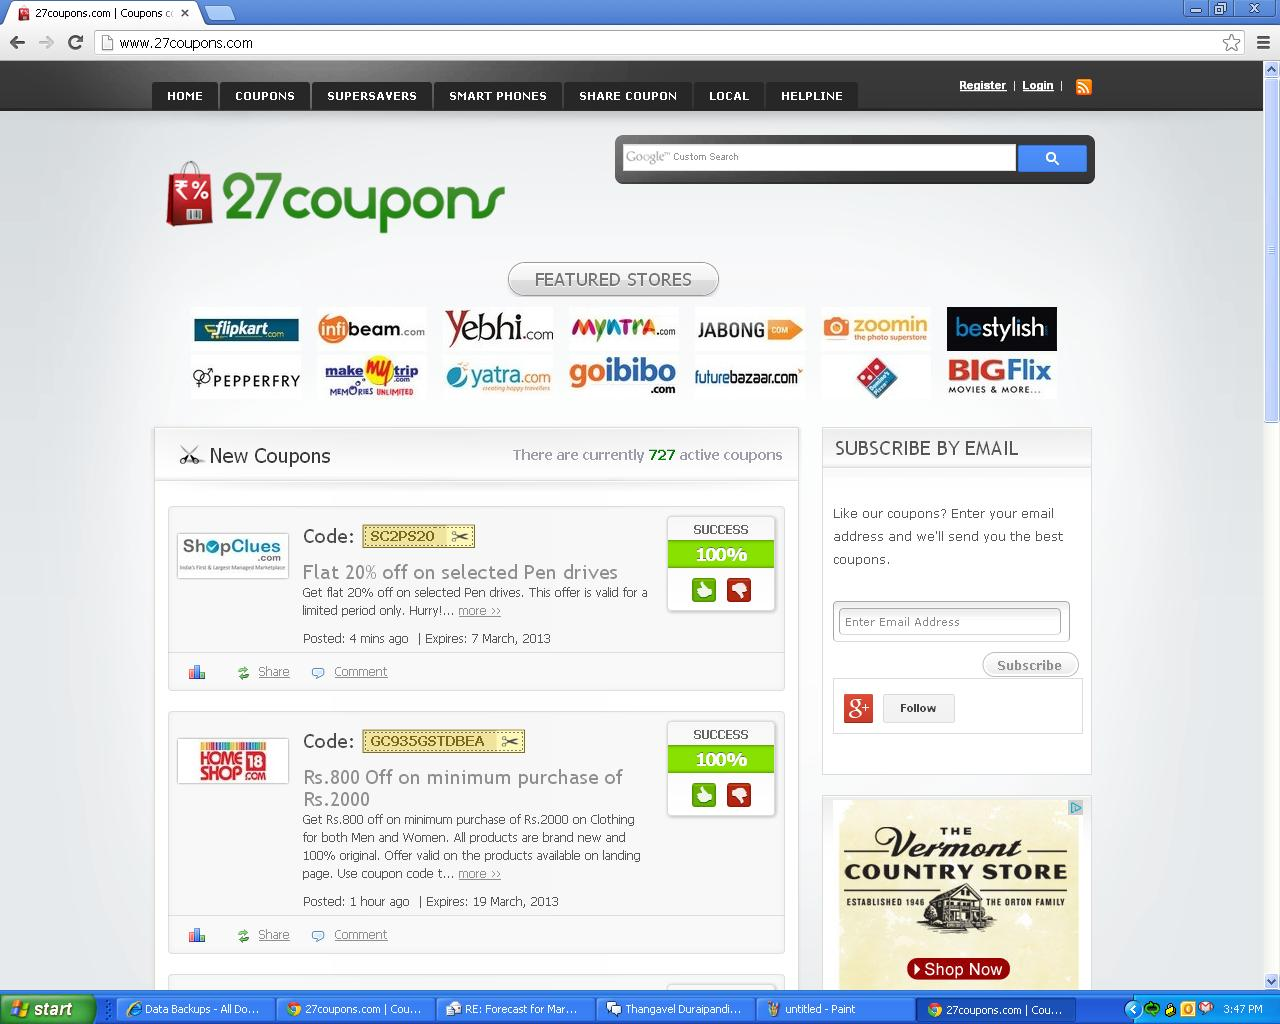 To acquire Coupons bestylish 27 picture trends